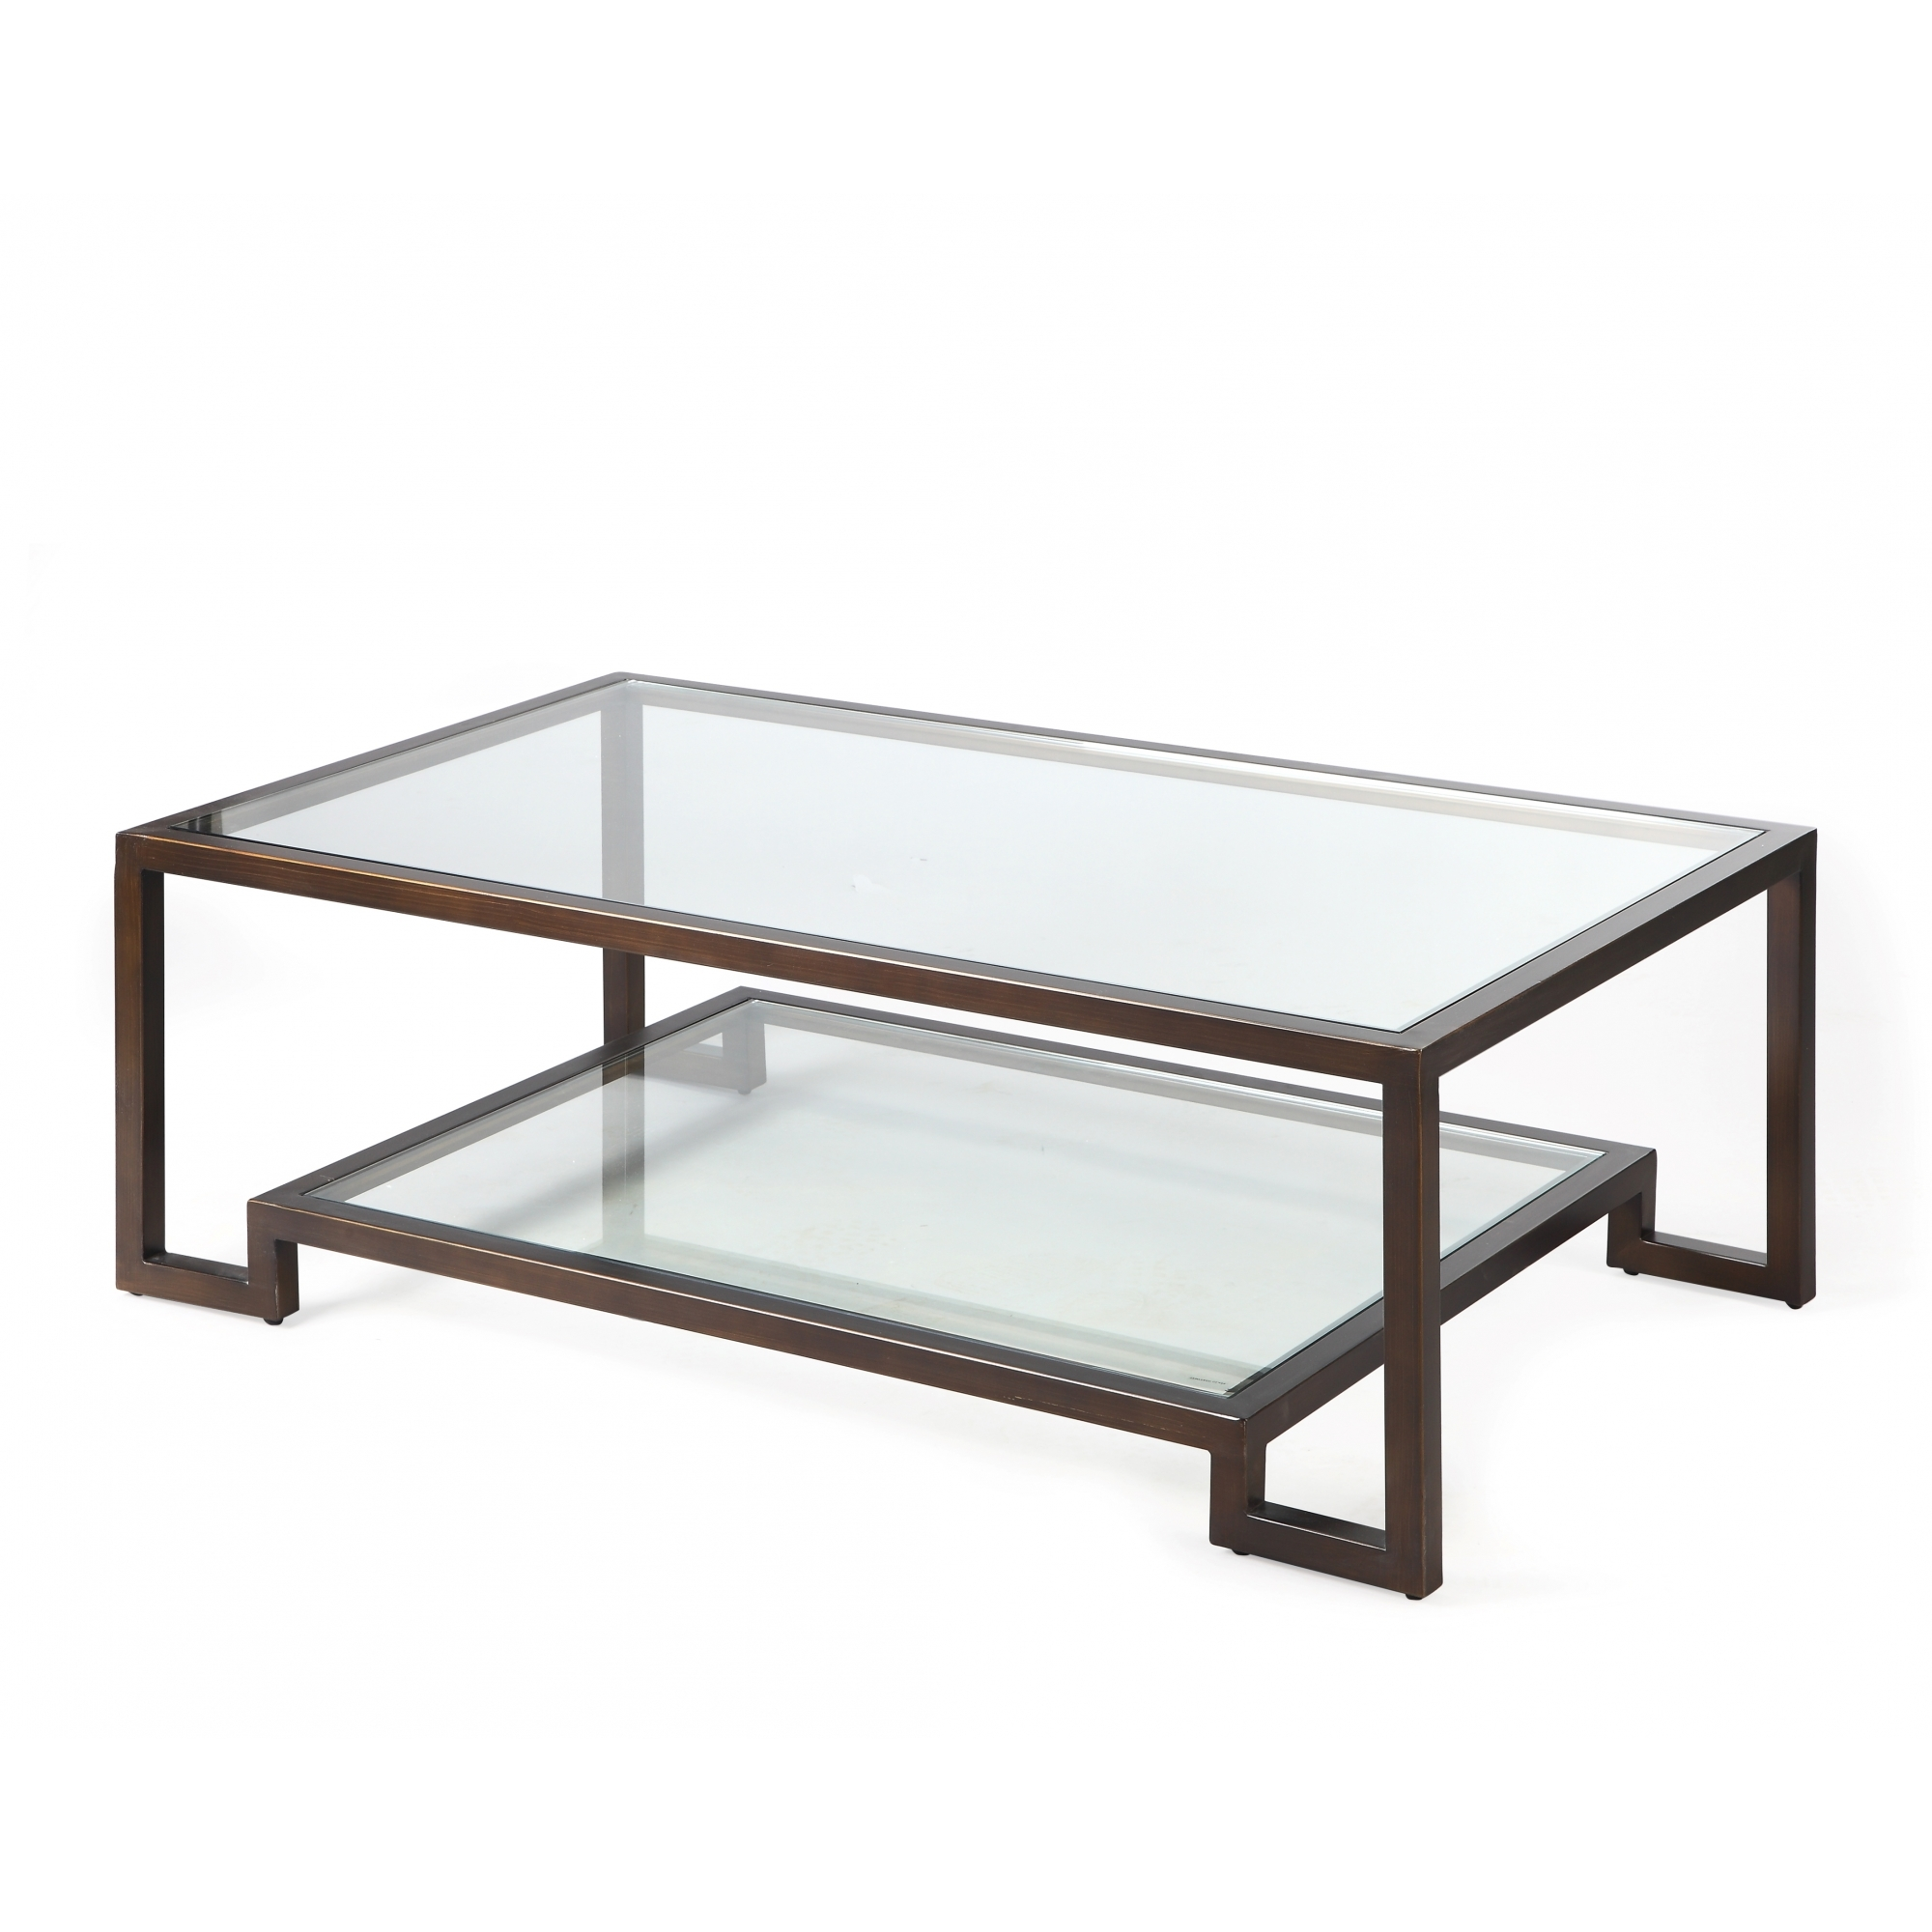 Ming Coffee Table By Liang Eimil Uber Interiors